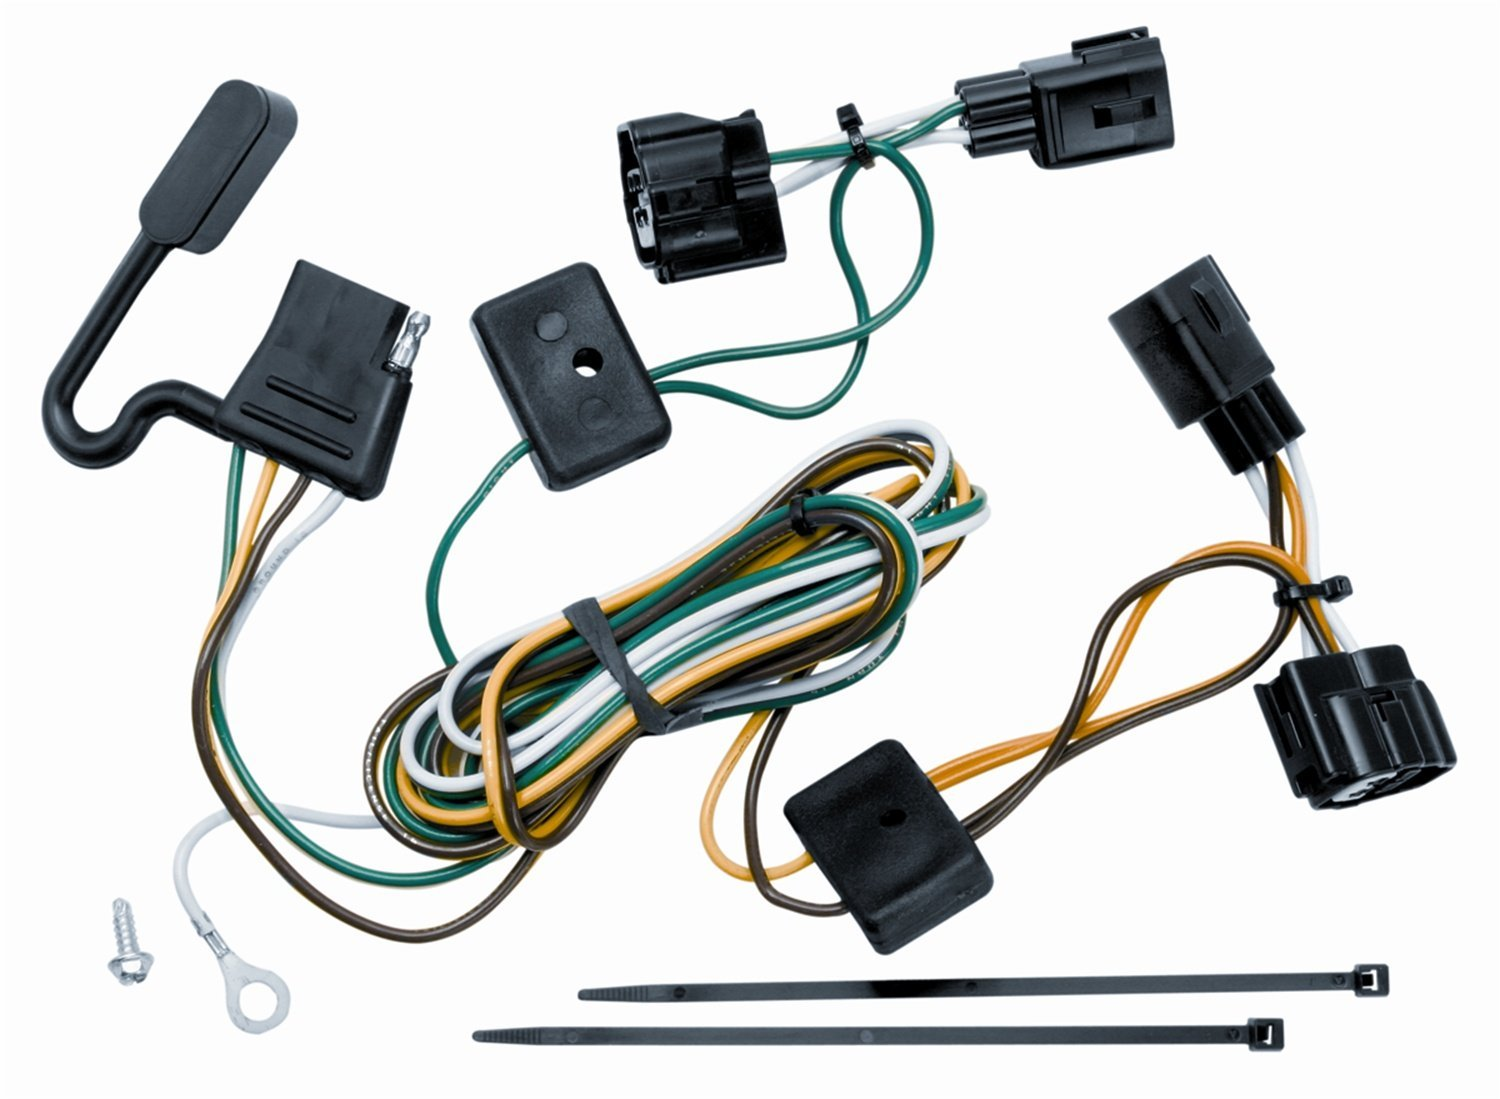 Jeep Wrangler Wiring Harness Connectors Library Plug And Play Get Quotations Vehicle To Trailer Connector 98 06 Unlimited